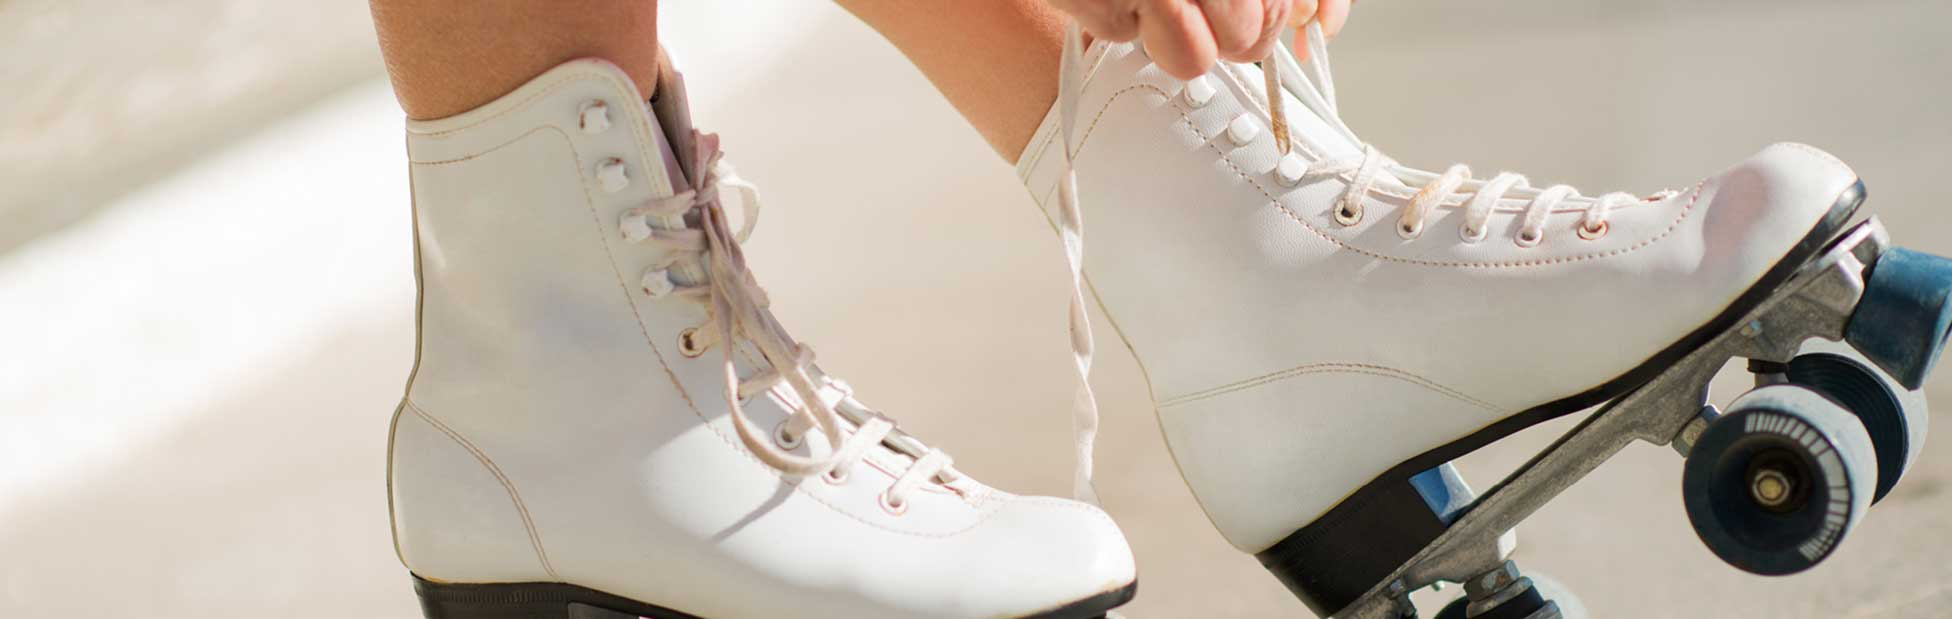 Closeup of roller skate shoelaces being tied up by a pair of hands